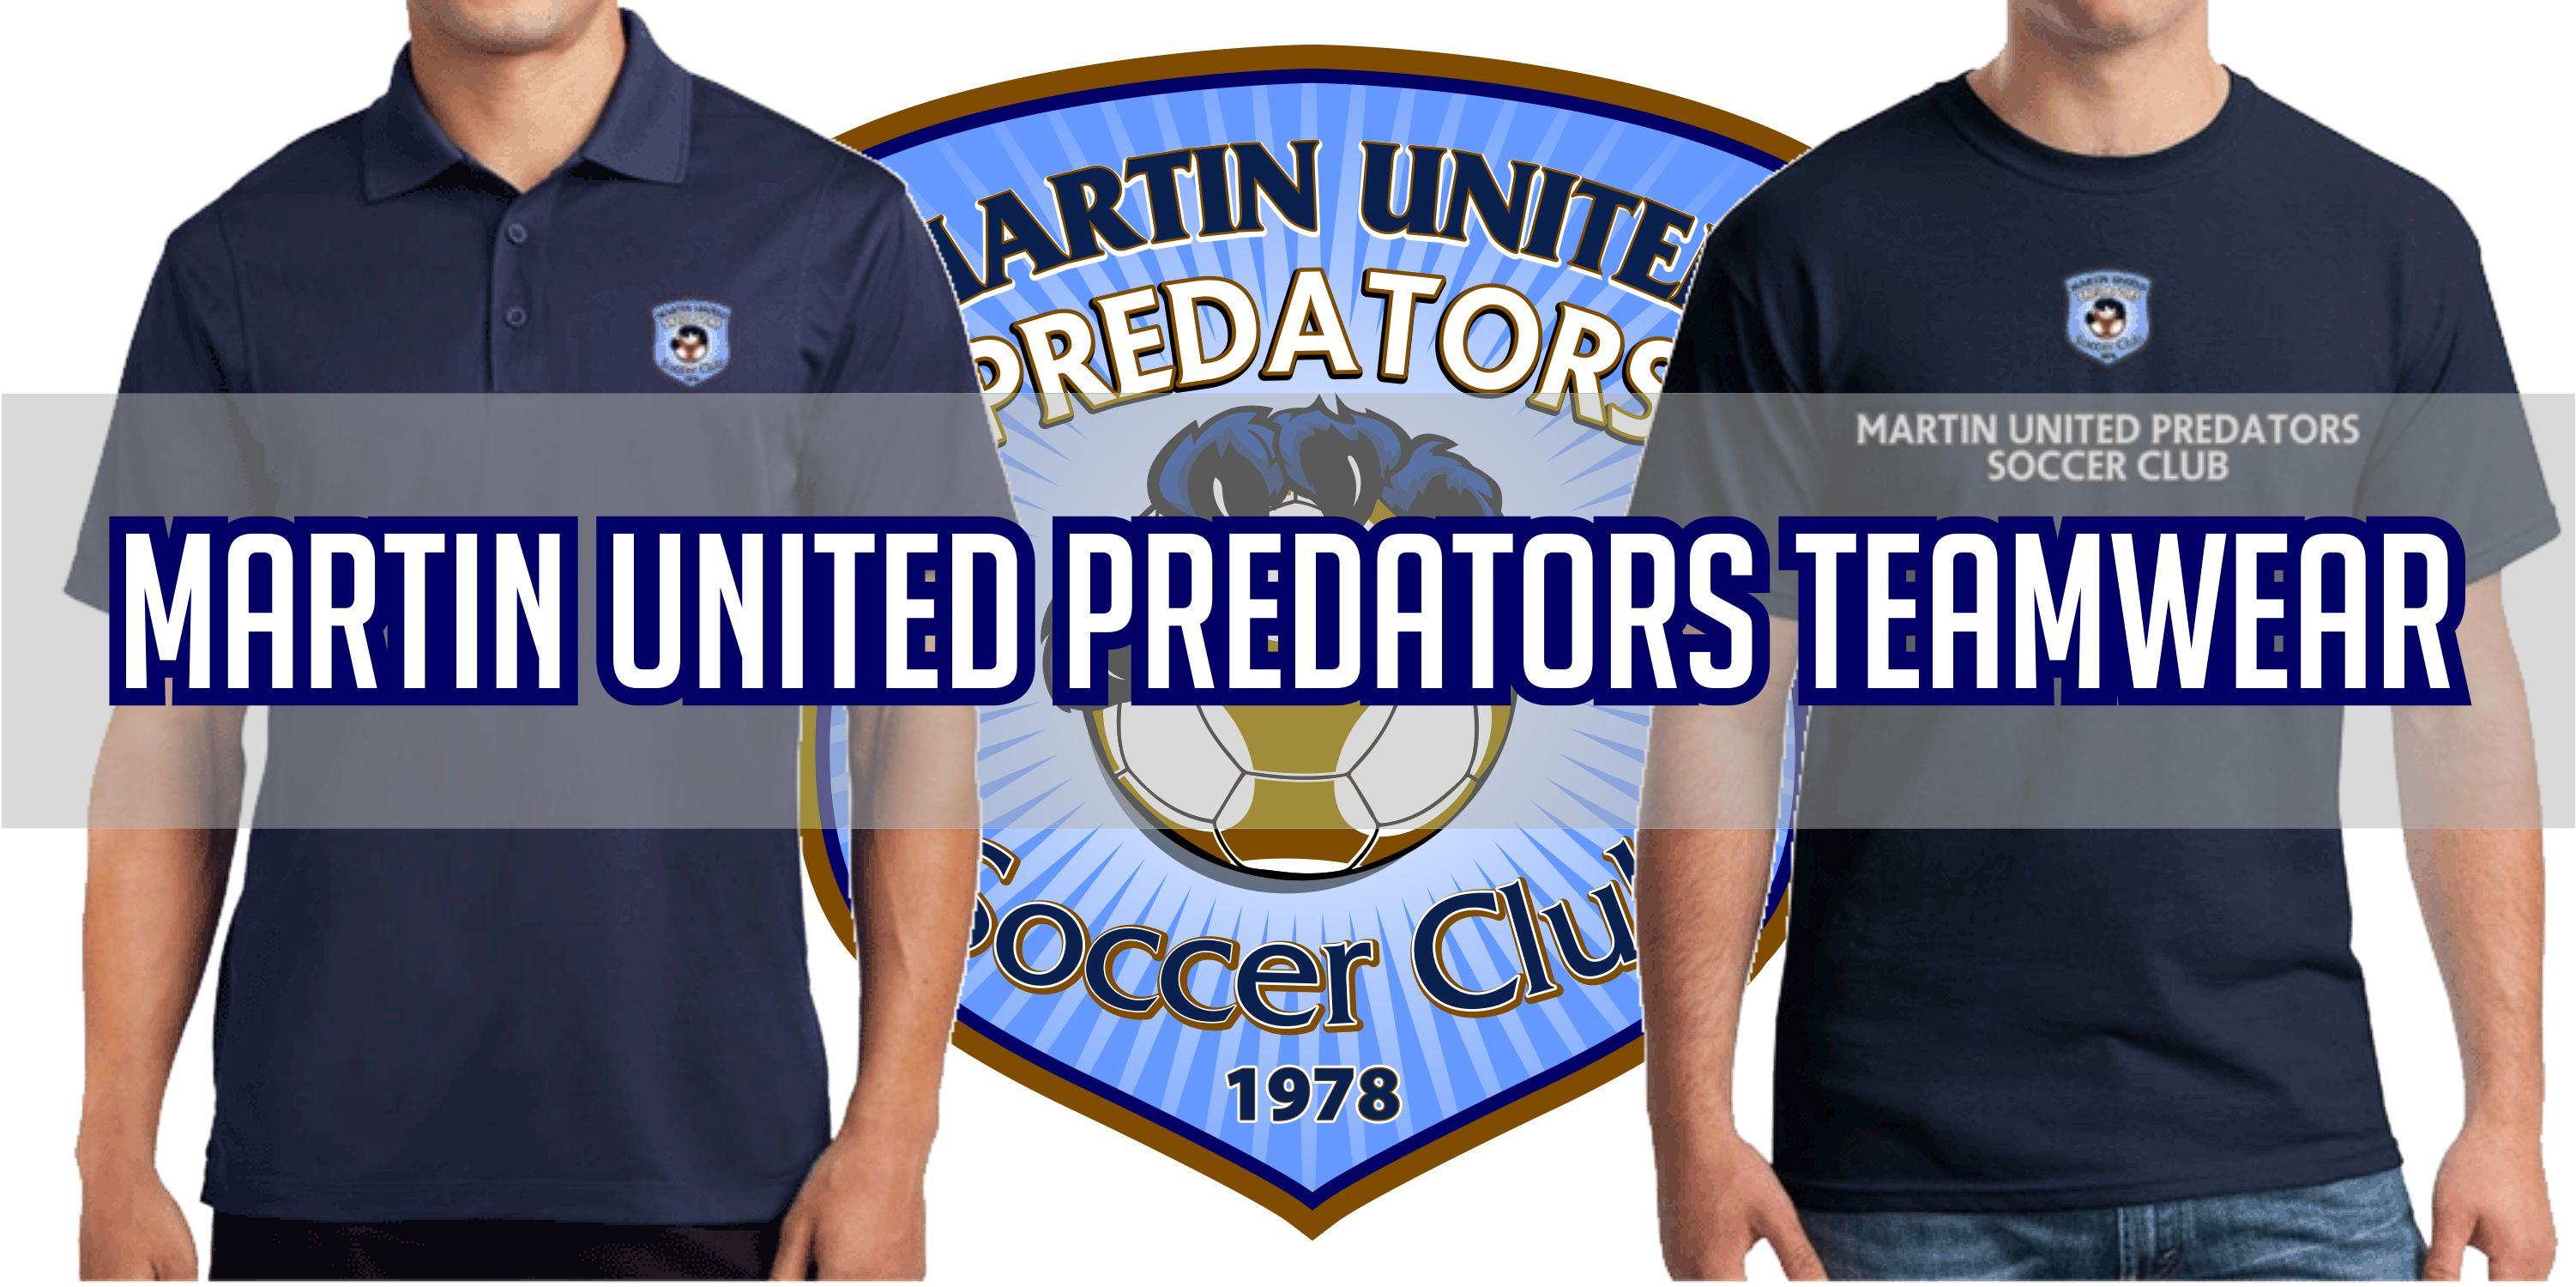 Martin United Soccer Club Teamwear